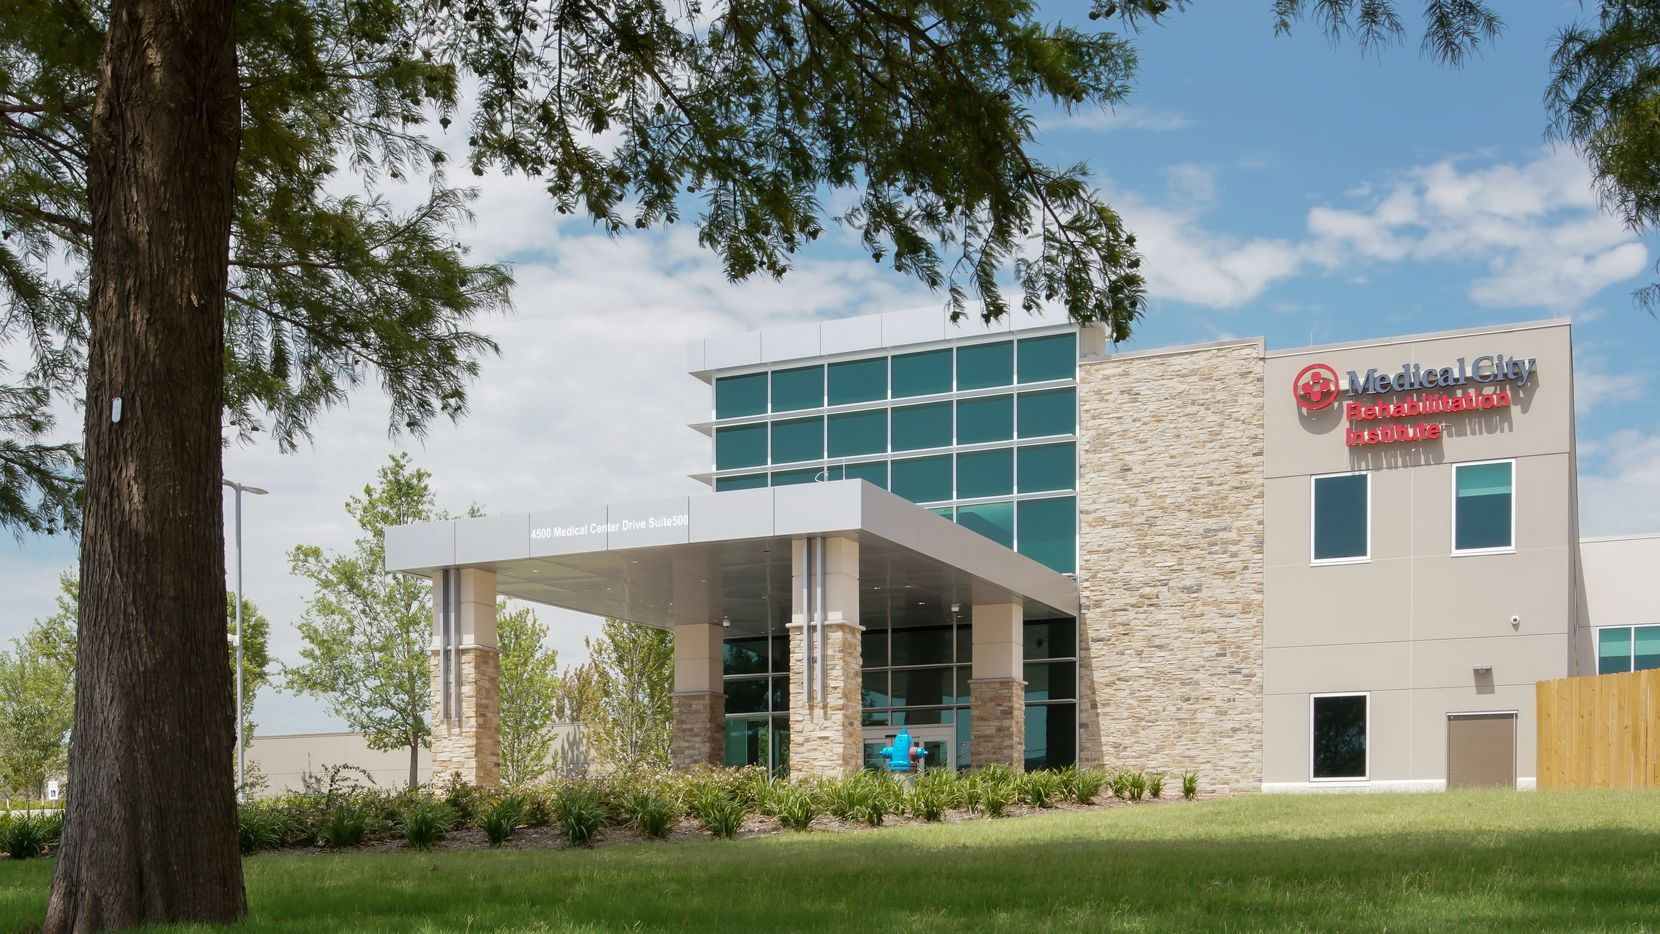 Medical City McKinney's new inpatient rehabilitation pavilion at the Medical City McKinney main campus. The facility is now open after two years of construction.